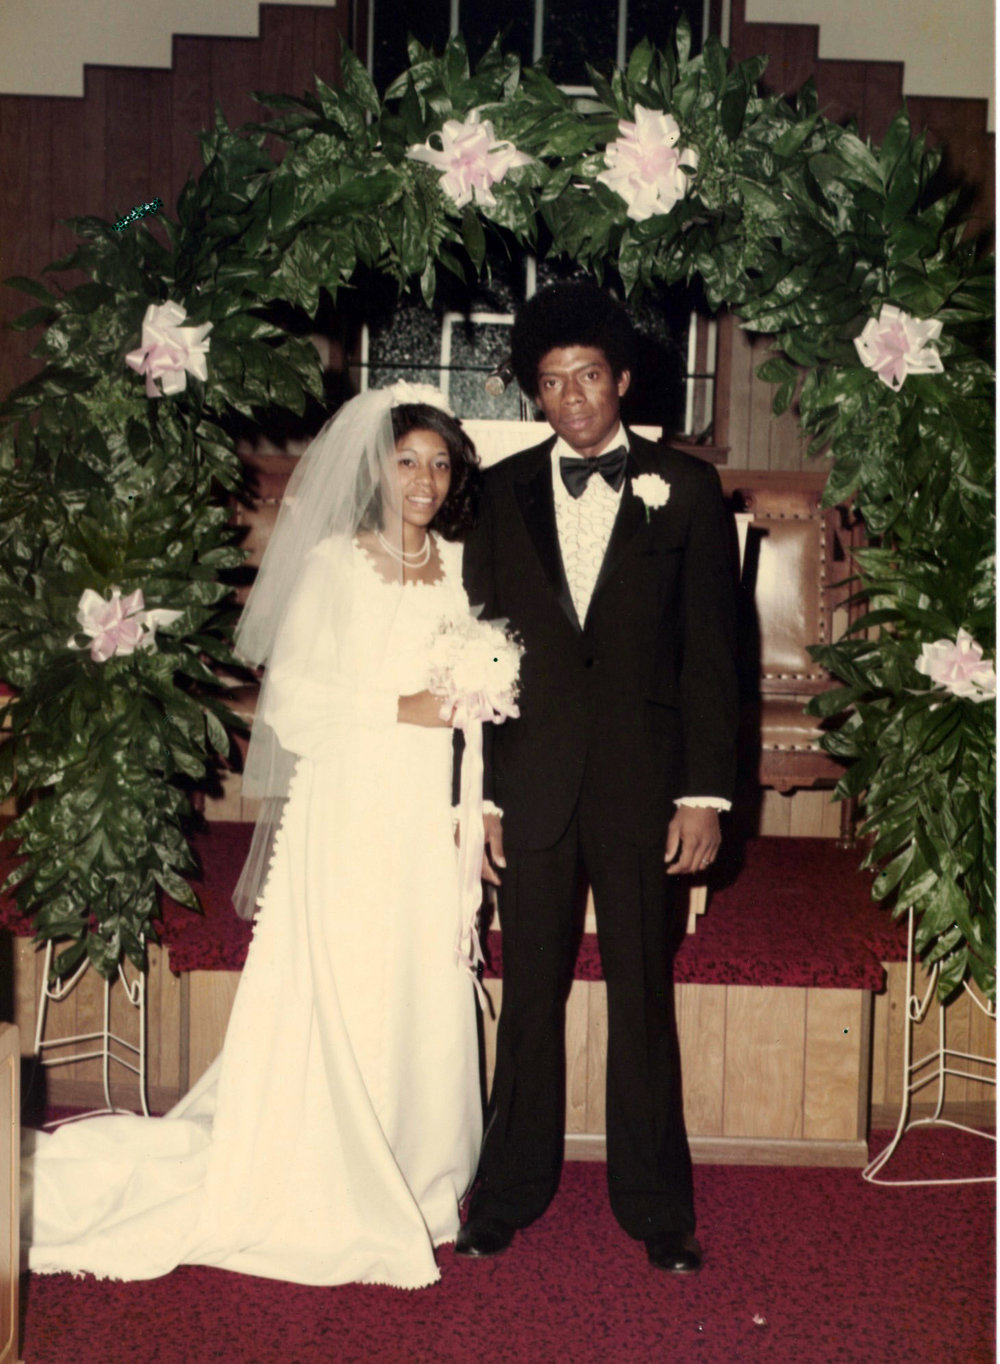 Carolyn and George were married December 22, 1974, at Polly Chapel Baptist Church.